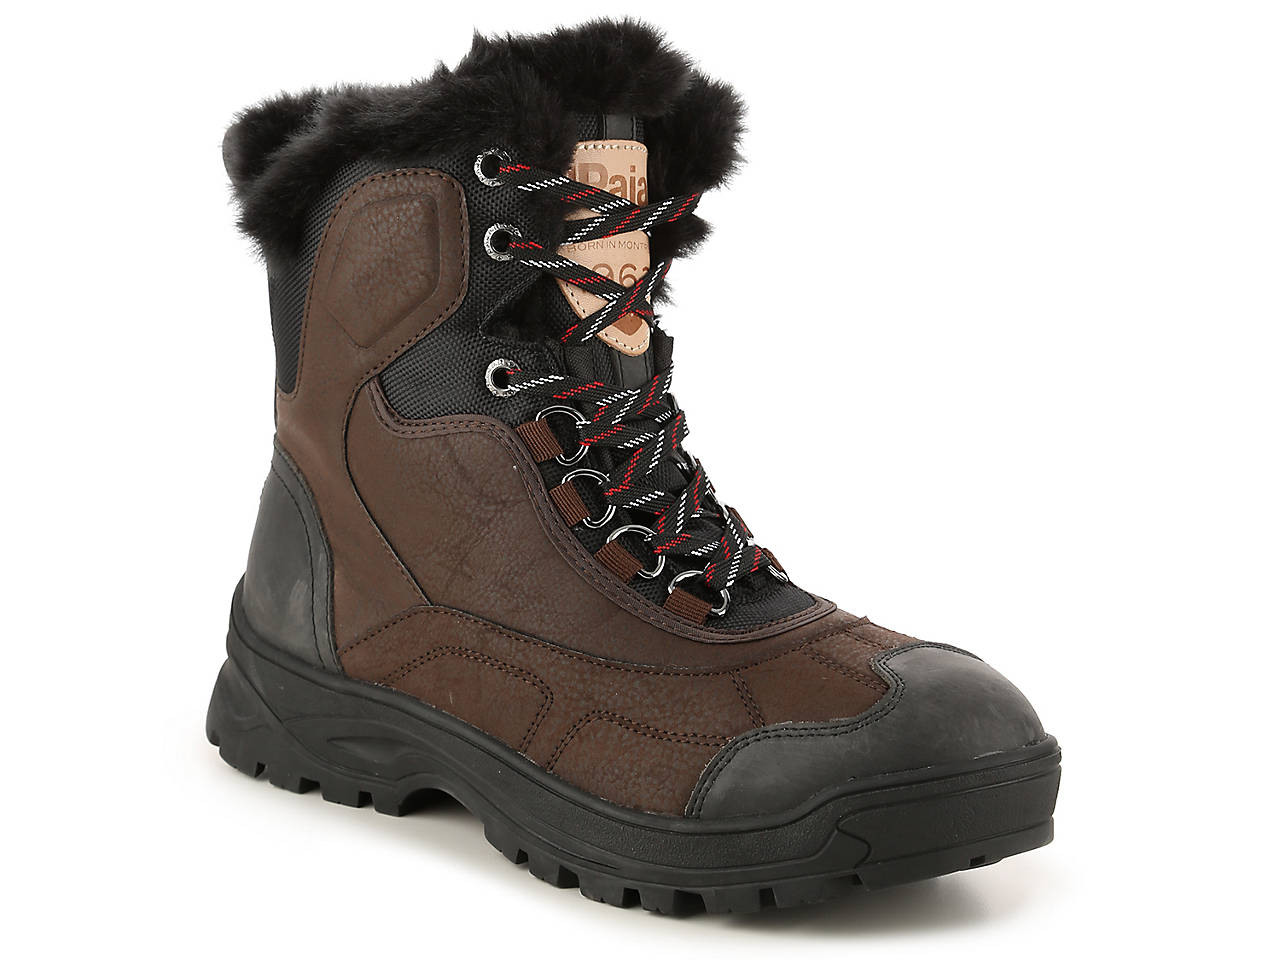 Snow Work Boots Coltford Boots